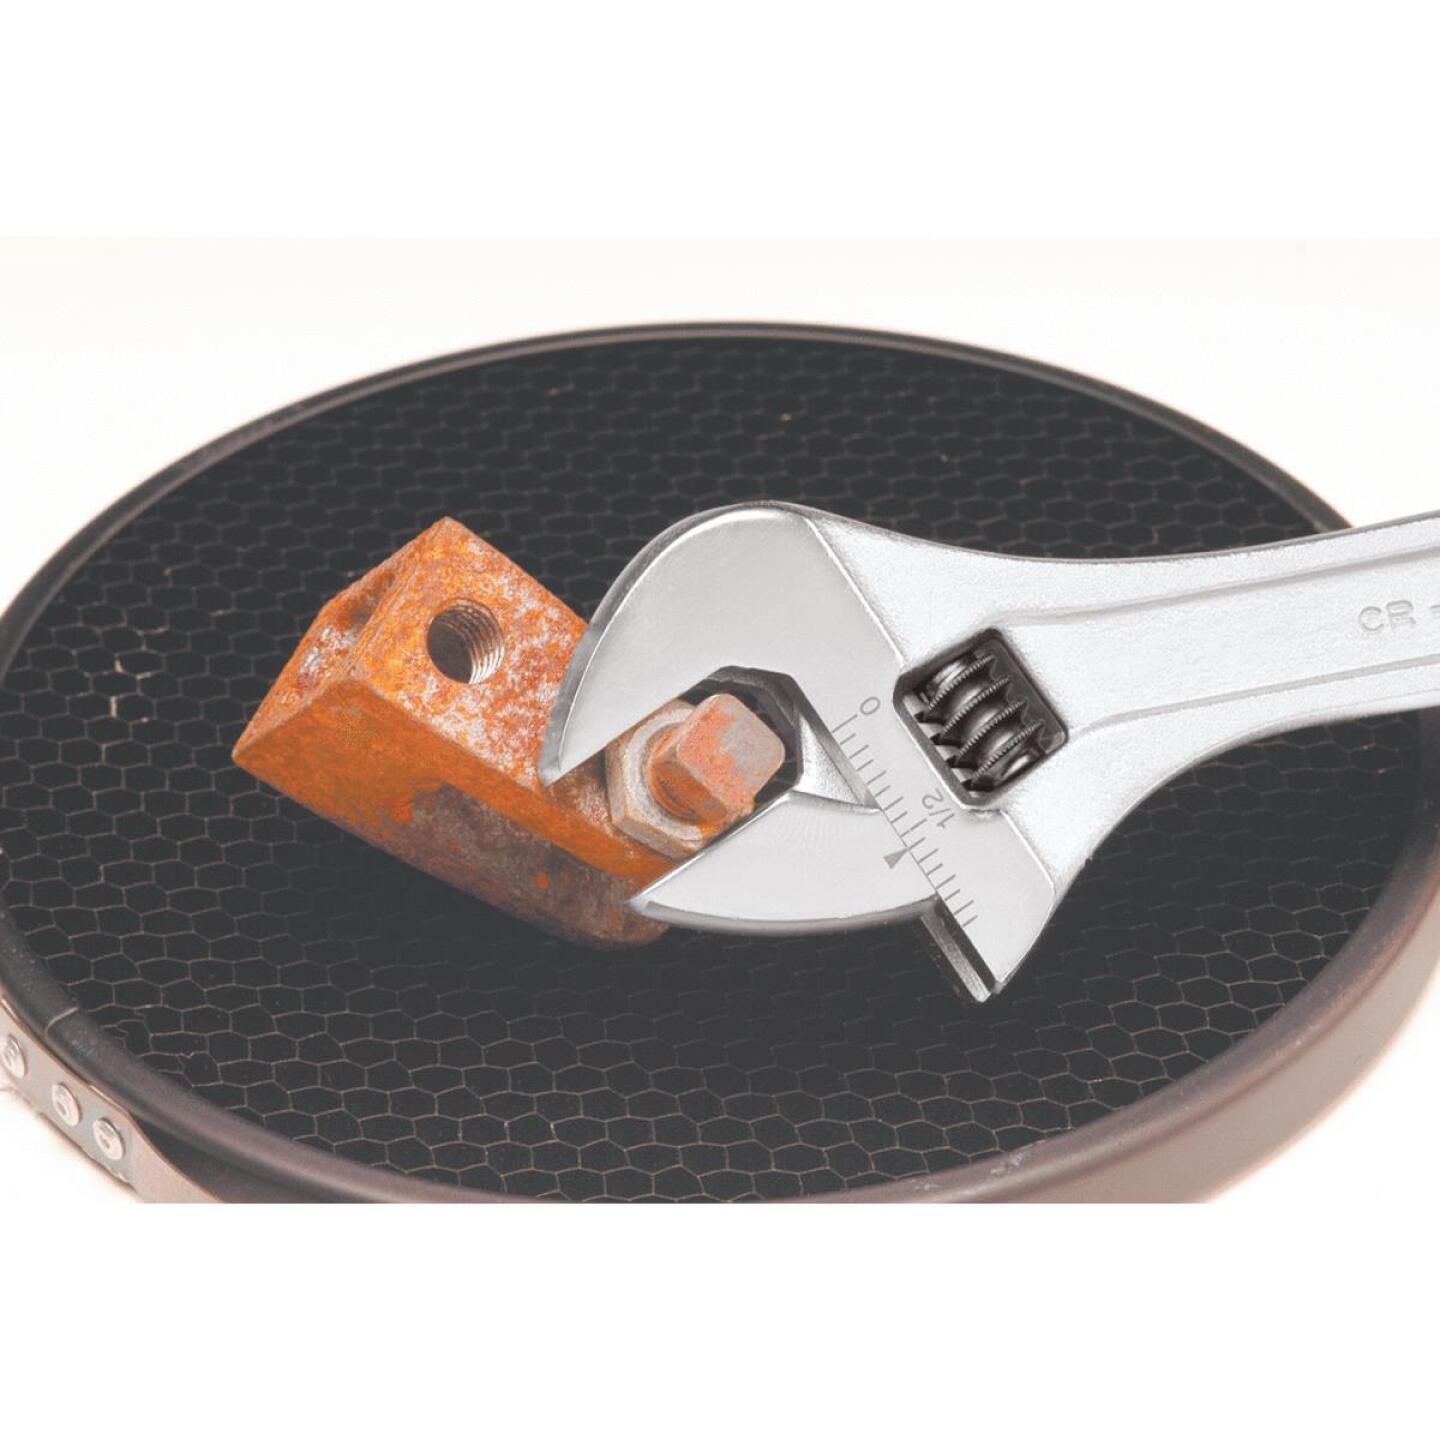 Channellock 6 In. Adjustable Wrench Image 3